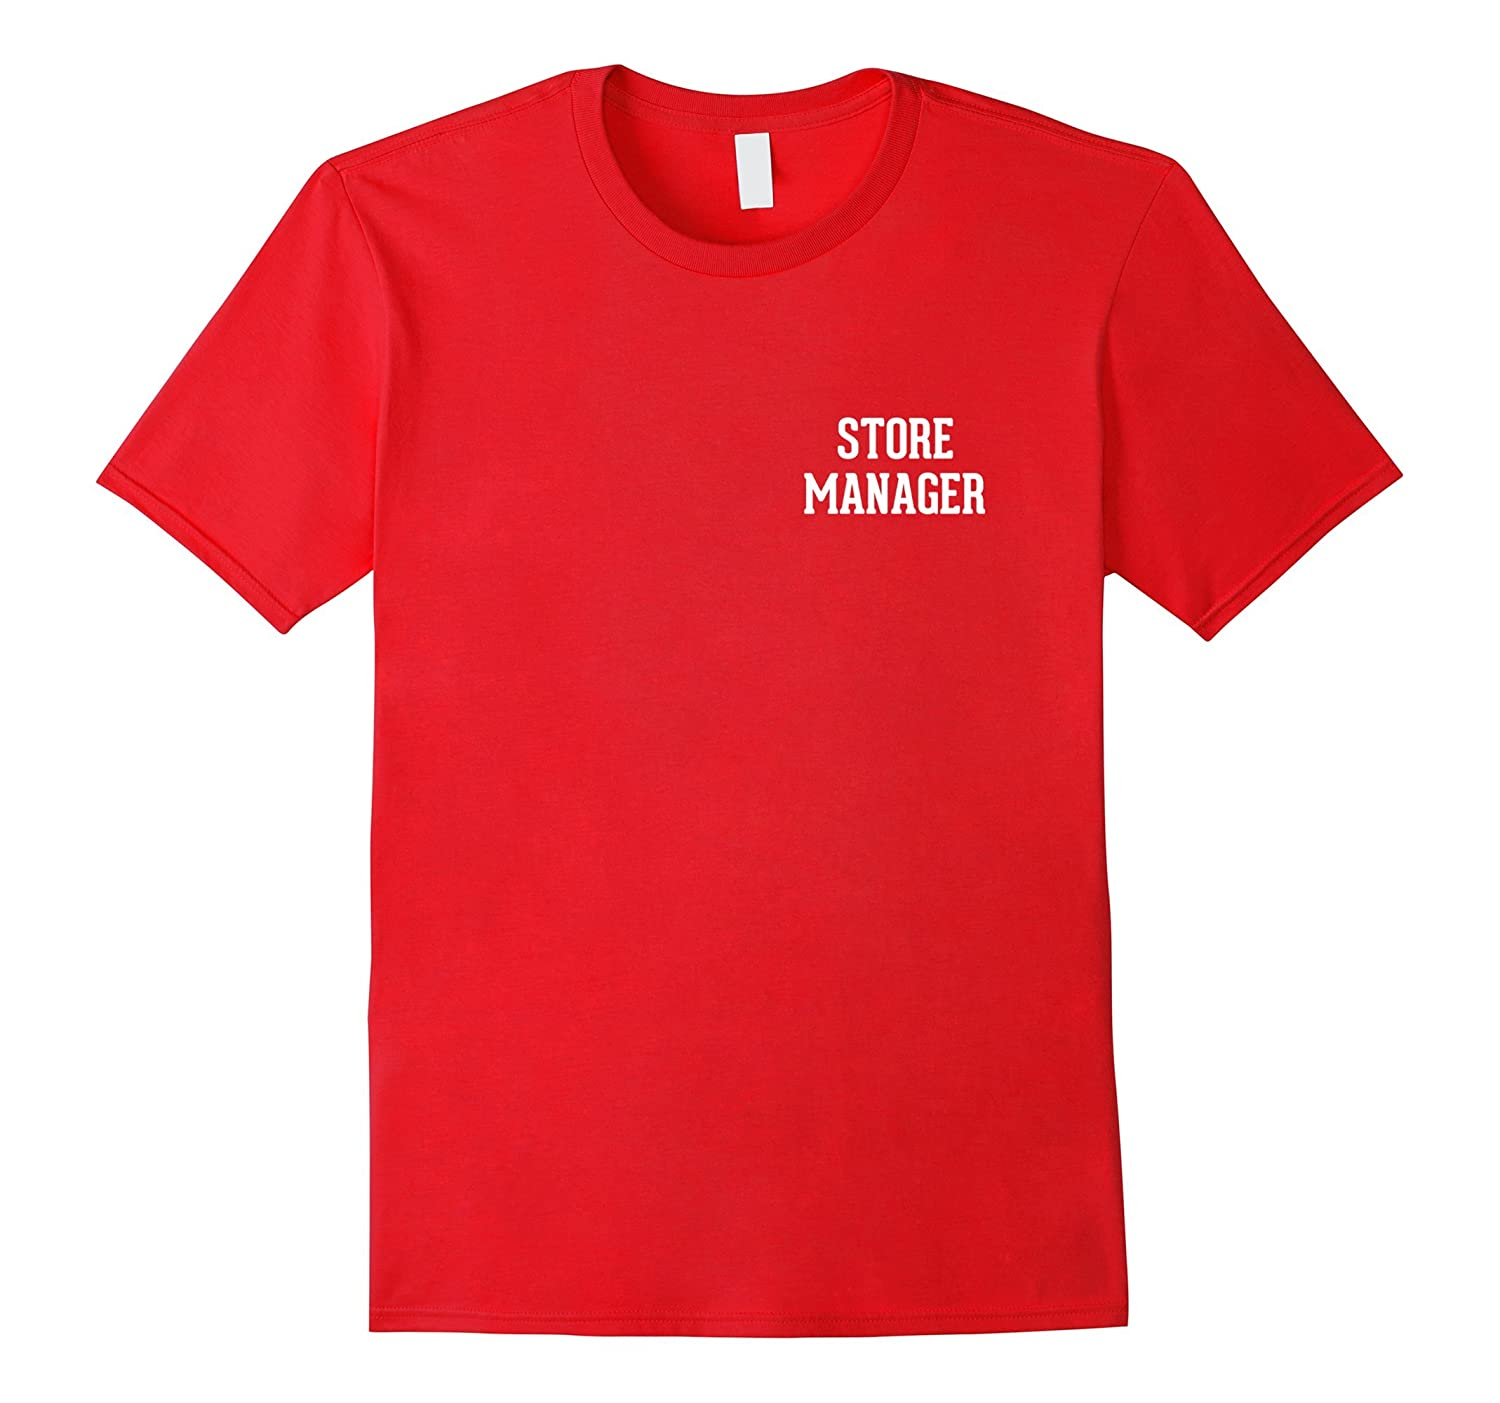 Store Manager Employee Uniform T-Shirt-TD